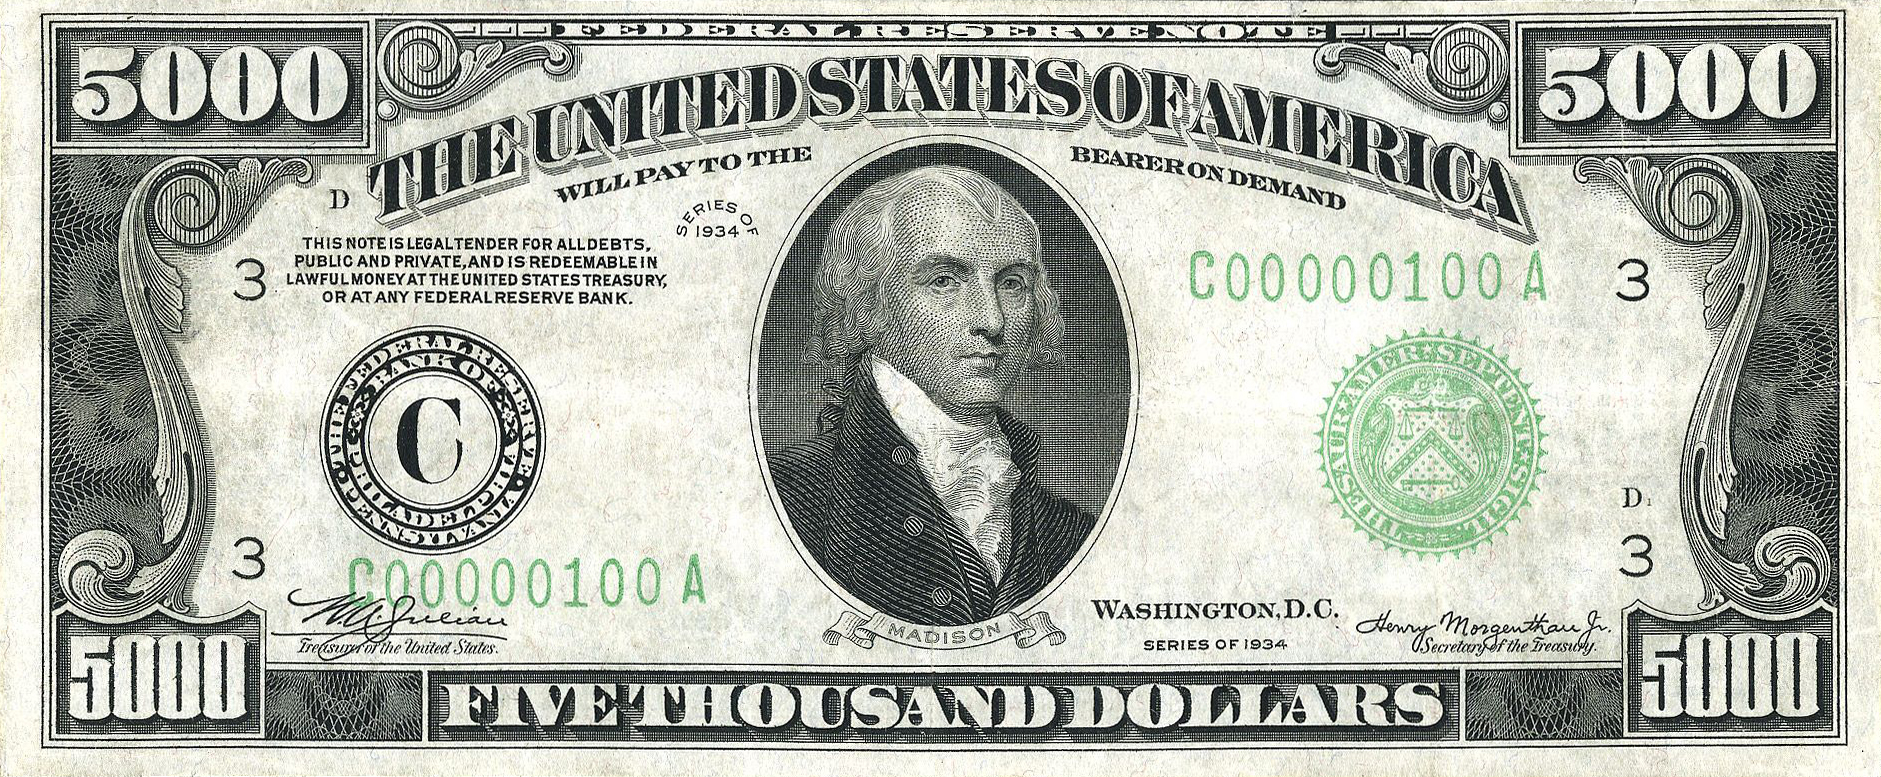 U S Bills You Didn T Know Existed Can Anyone Make Change For A 100 000 Cube Breaker Thousand Dollar Bill 5000 Dollar Bill Dollar